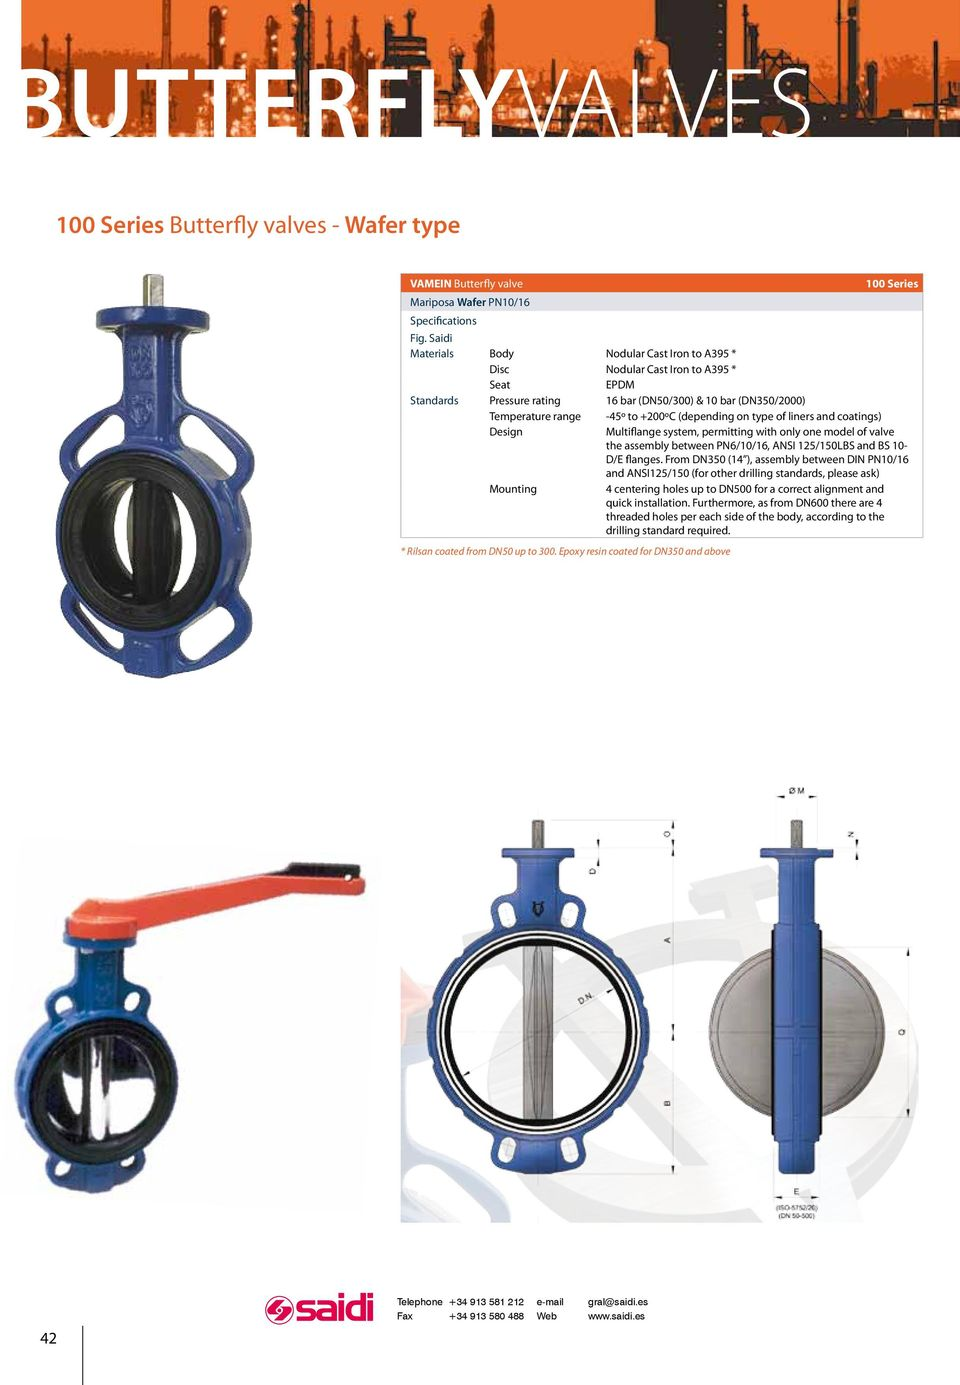 (depending on type of liners and coatings) Design Multifange system, permitting with only one model of valve the assembly between PN6/10/16, ANSI 125/150LBS and BS 10- D/E fanges.